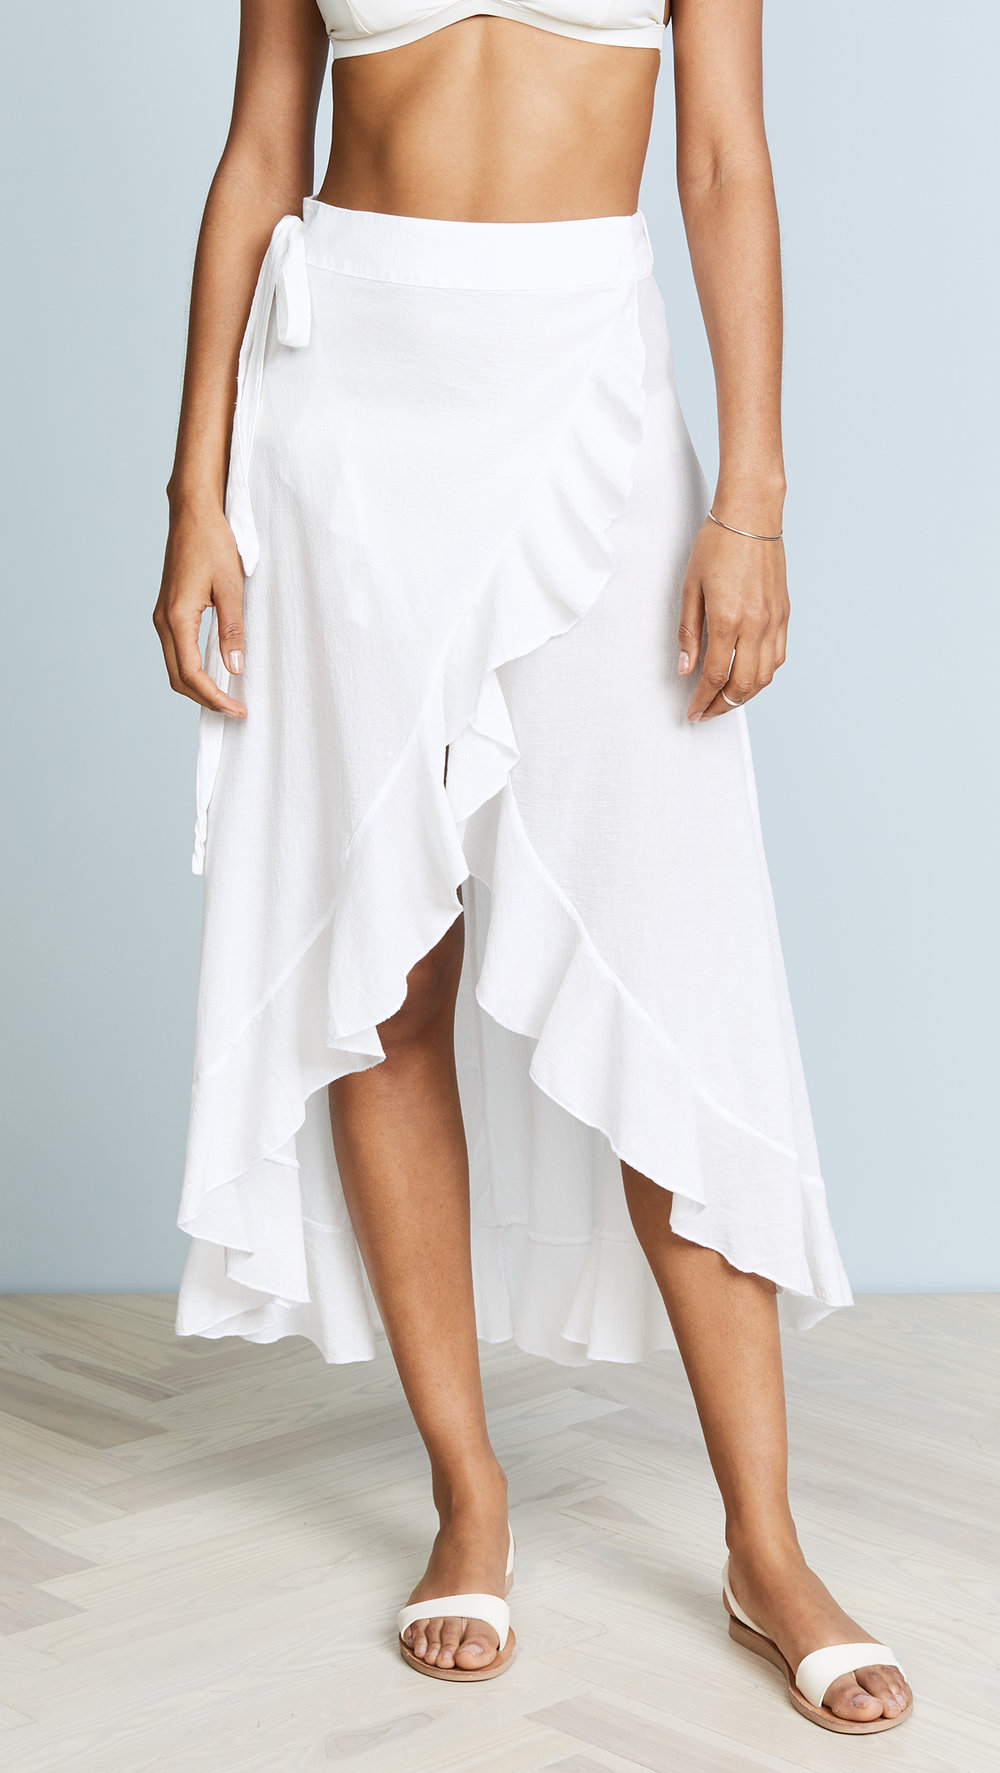 884404962f SOLANA wrap skirt - white — 9seed | Official Online Store